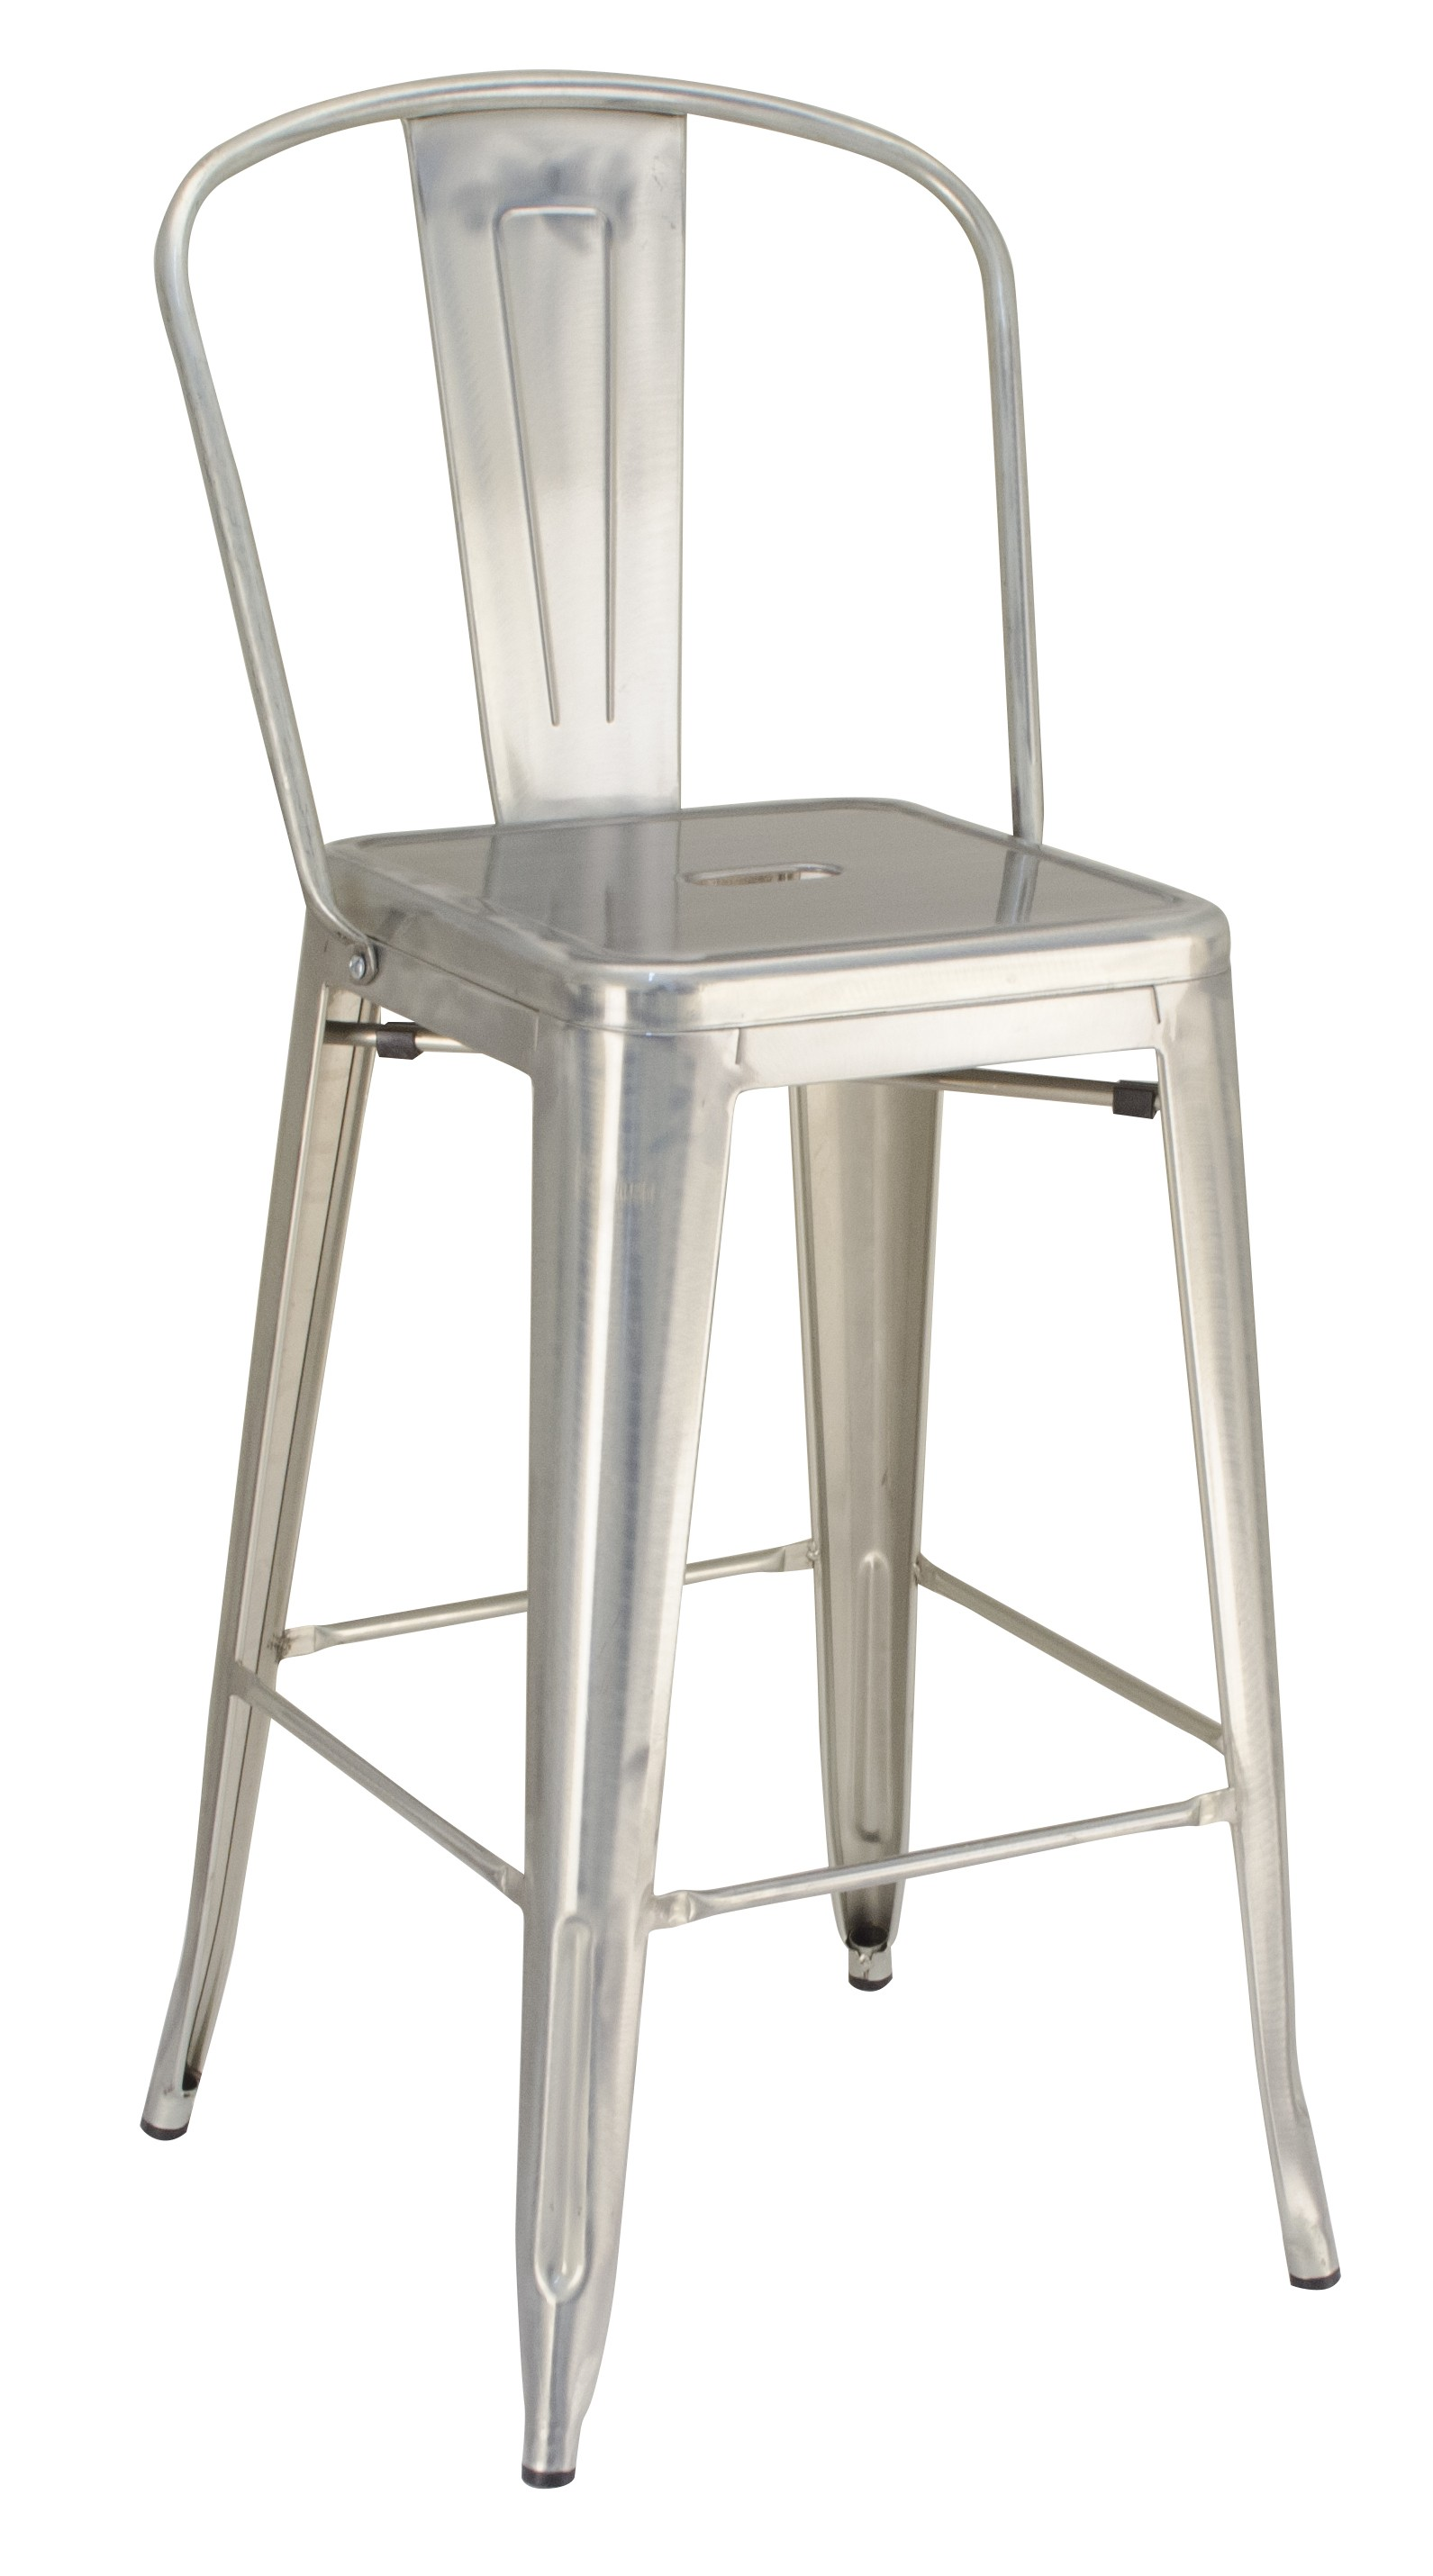 Paris Metal Barstool | Industrial Restaurant Chairs, Barstools | Plymold  Essentials